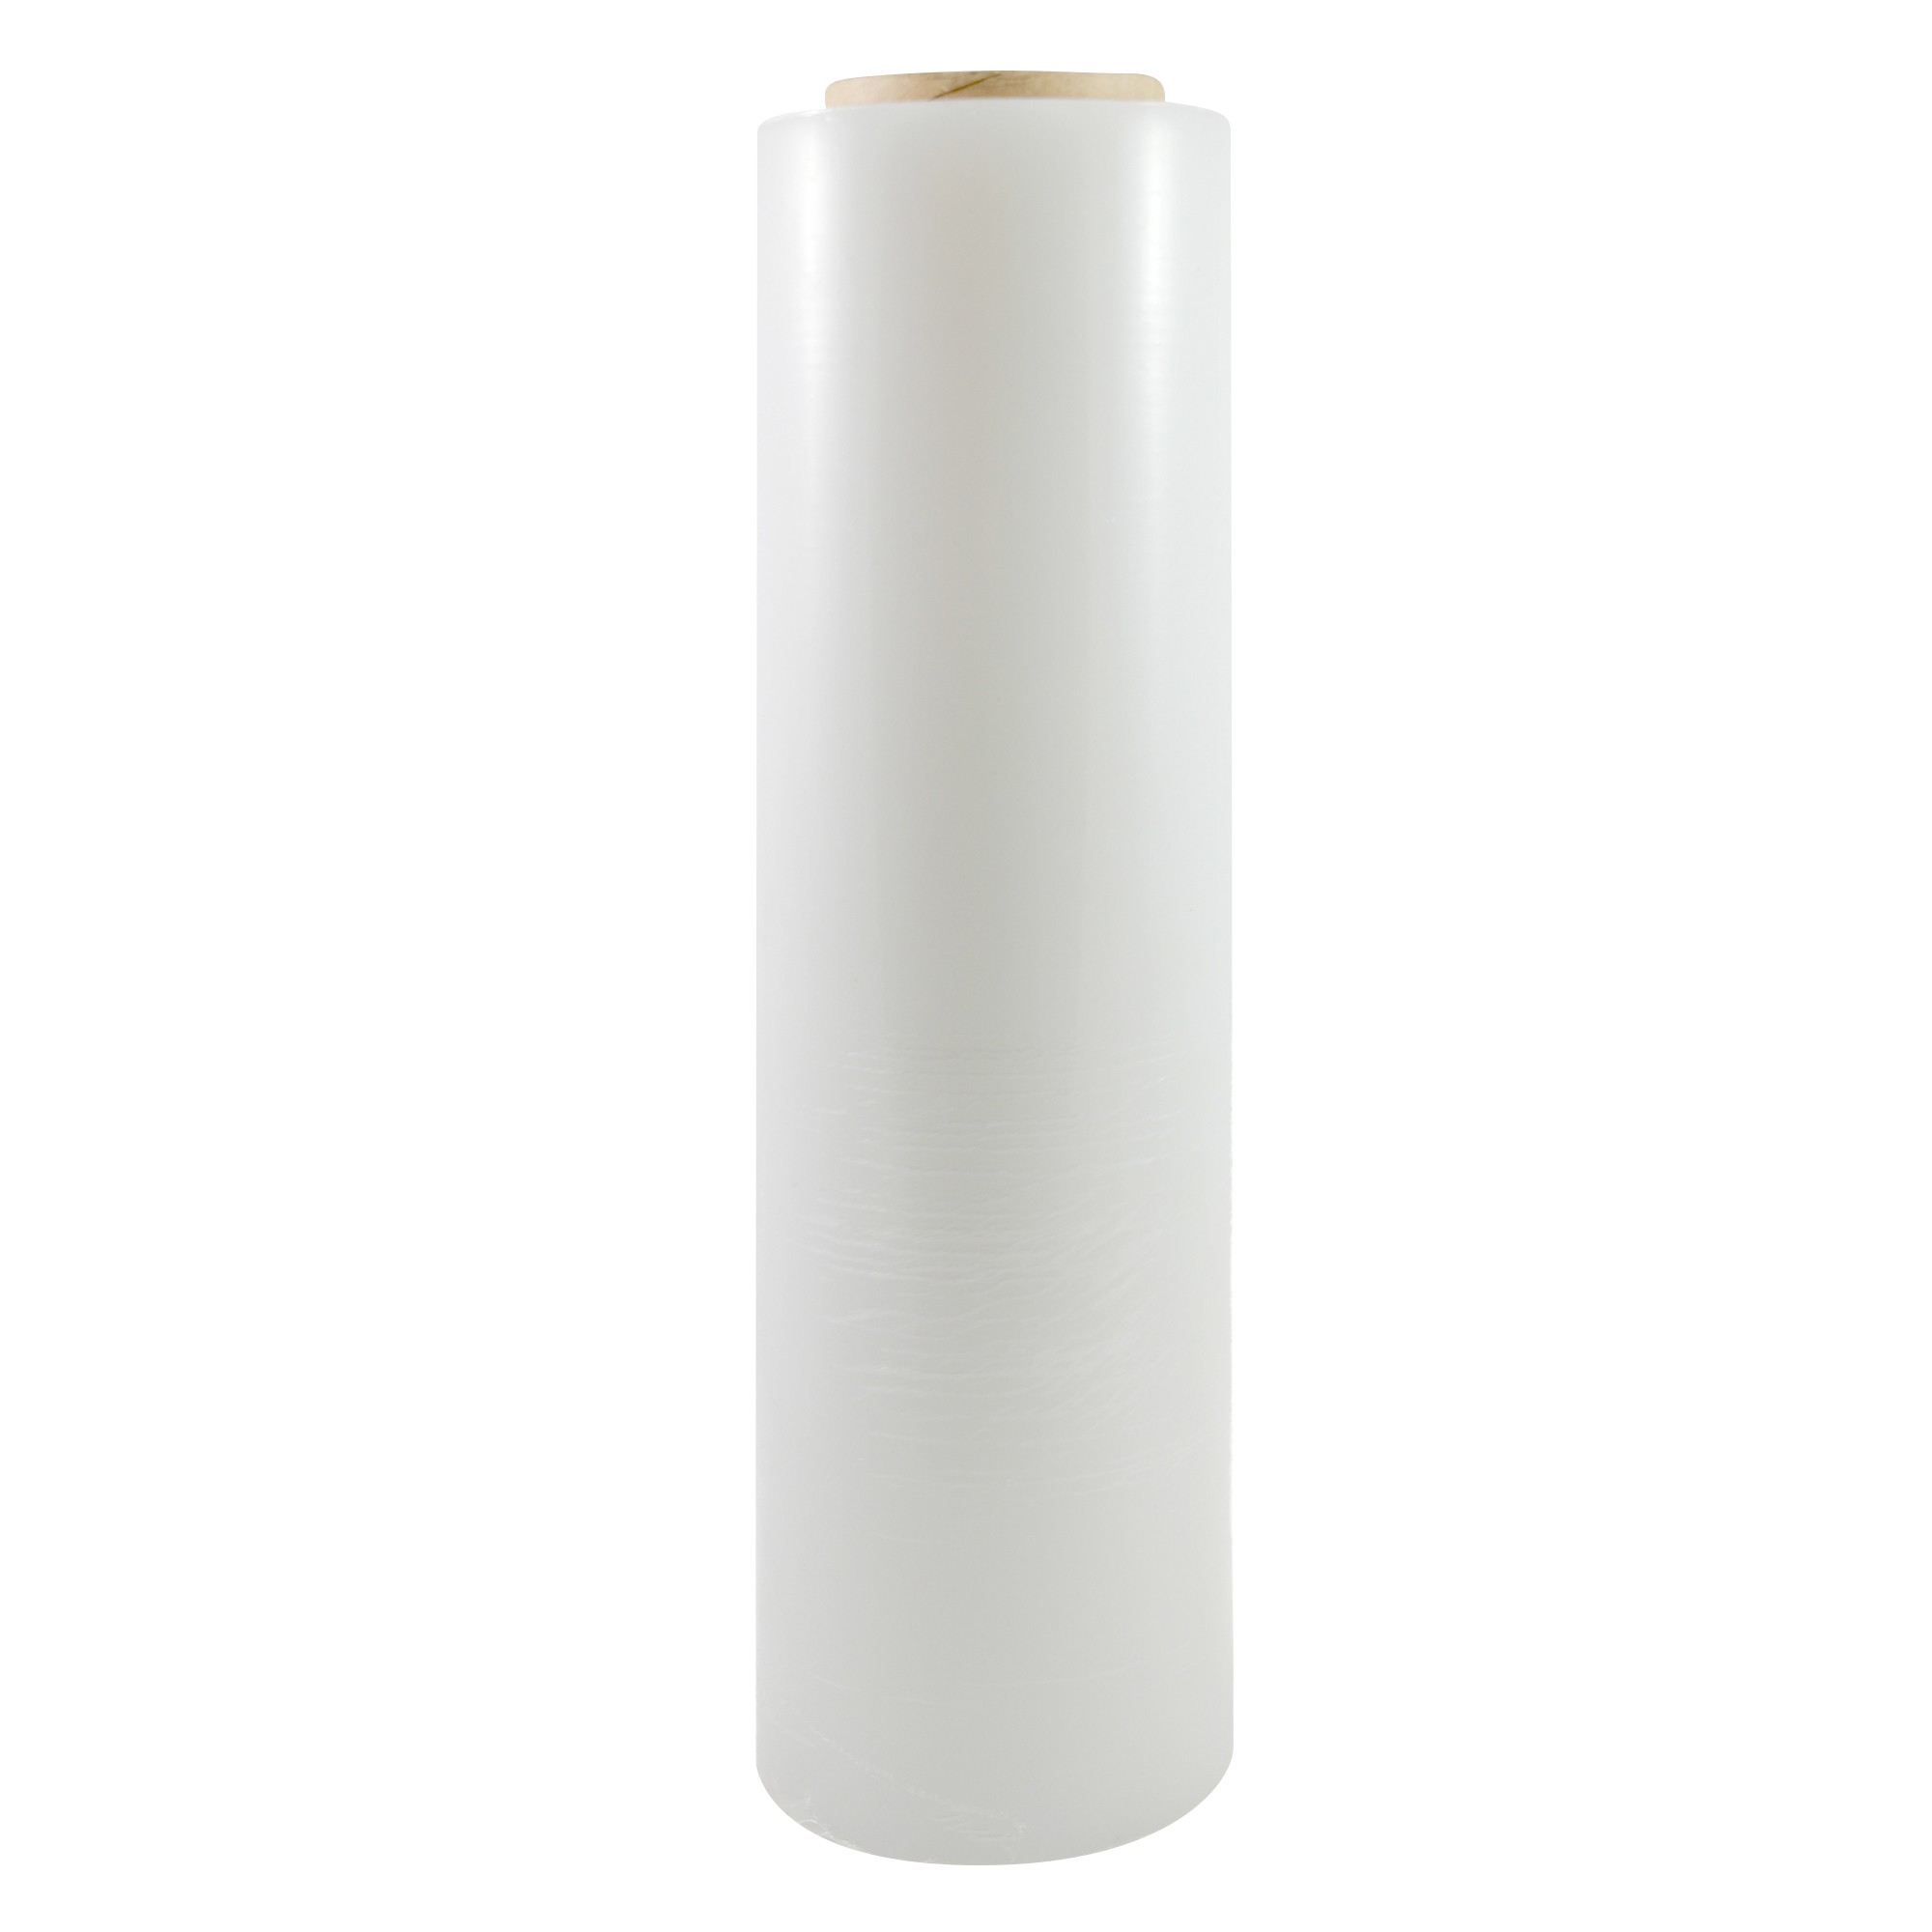 "TOTALPACK® 18"" x 1000' 85 Gauge, 4 Rolls. Gauge Blown Stretch White Film"